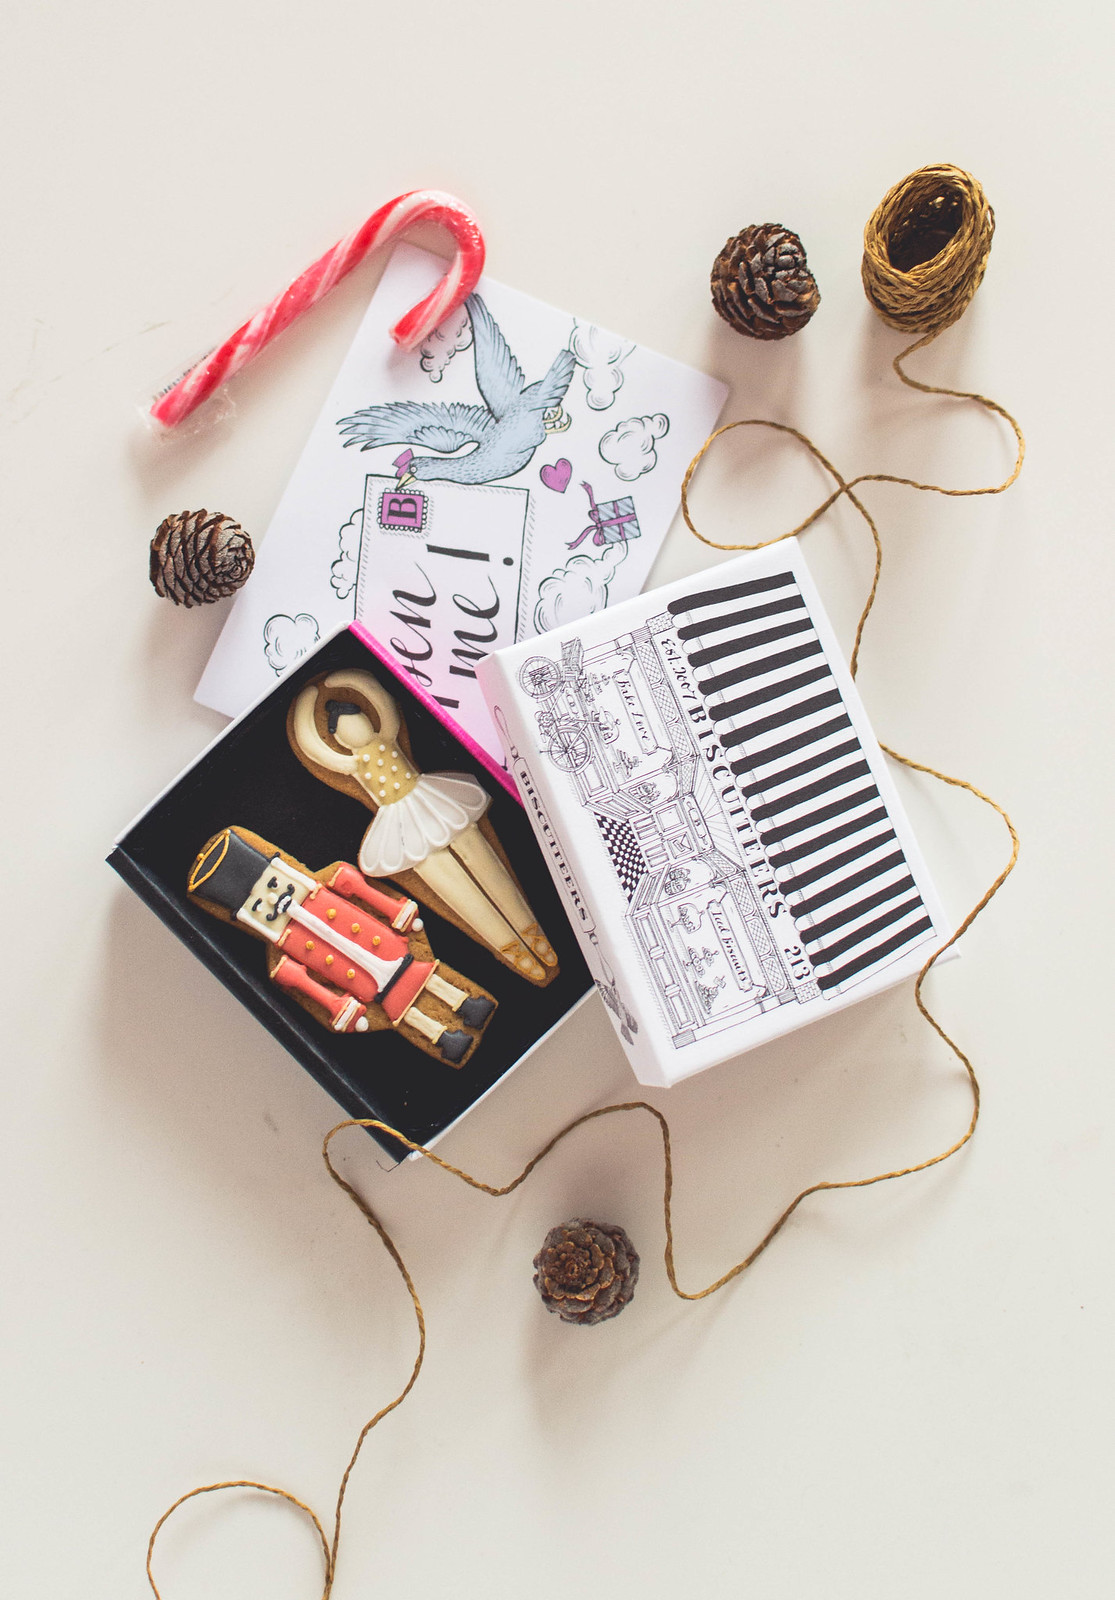 Between my November favourite: a new discovery, Biscuiteers and their Christmas biscuits